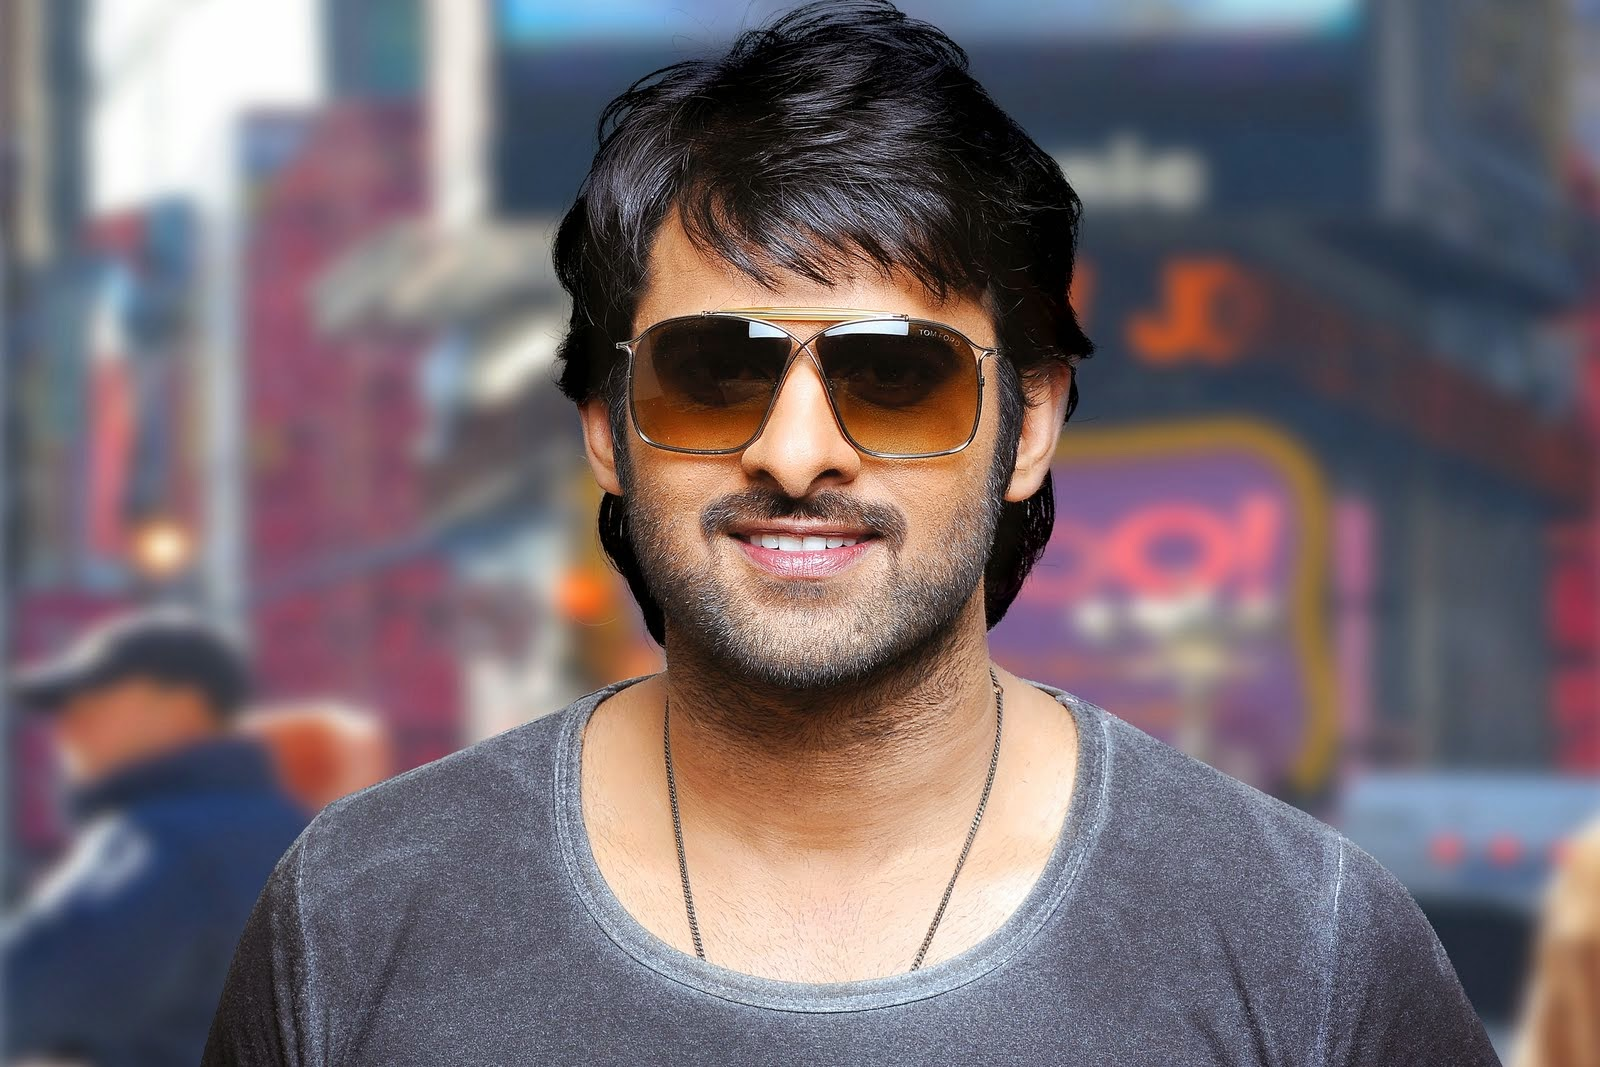 Futur 1 Prabhas Hd Wallpapers Prabhas Latest Hd Wallpapers Prabhas Wallpapers Free Download For Dektop